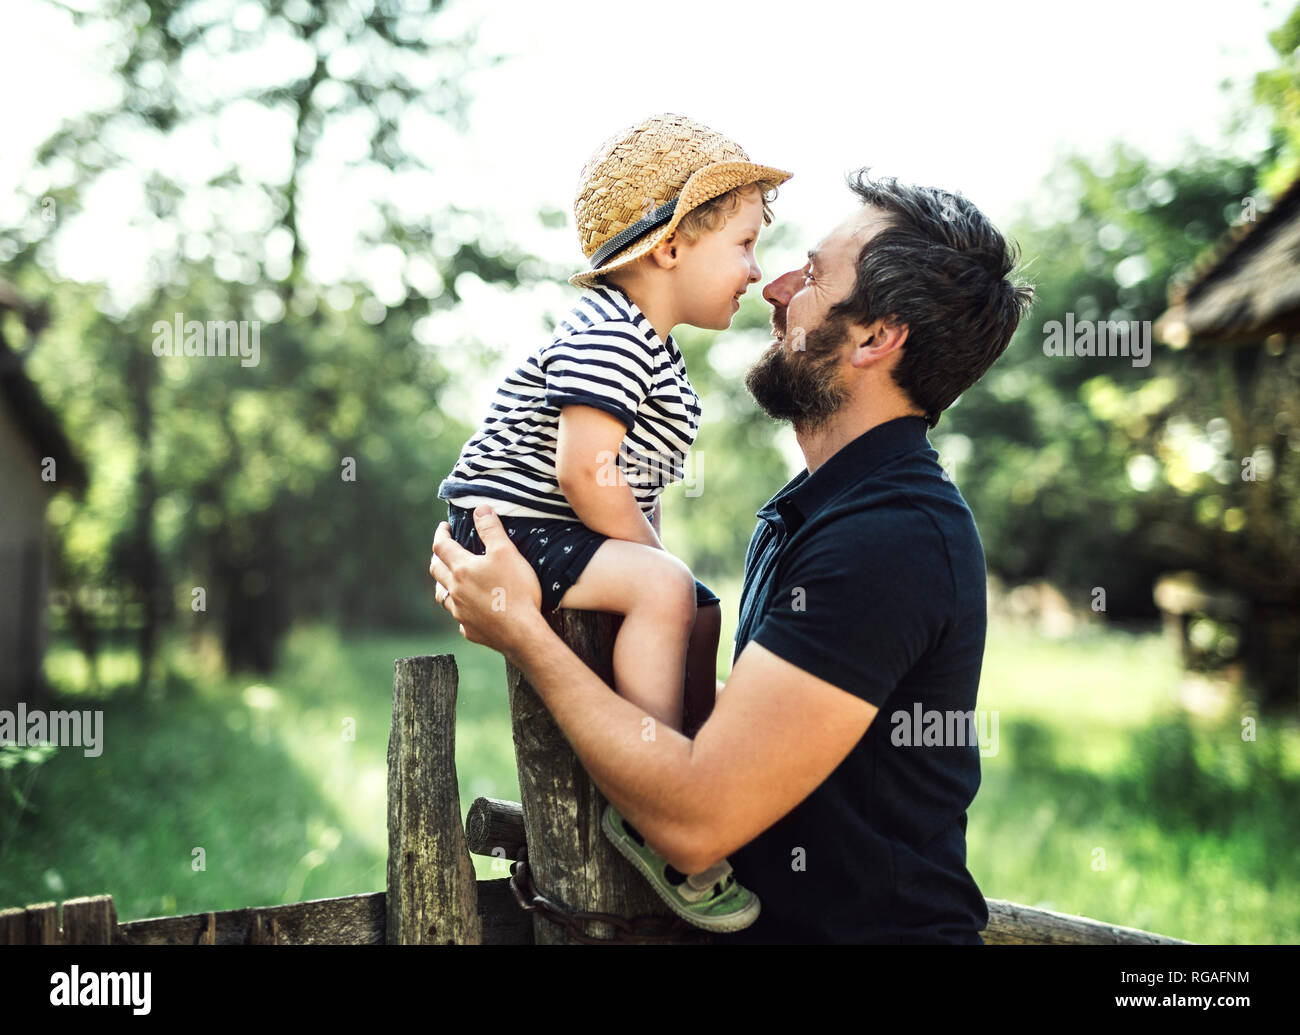 Father and little son spending time together outdoors Stock Photo